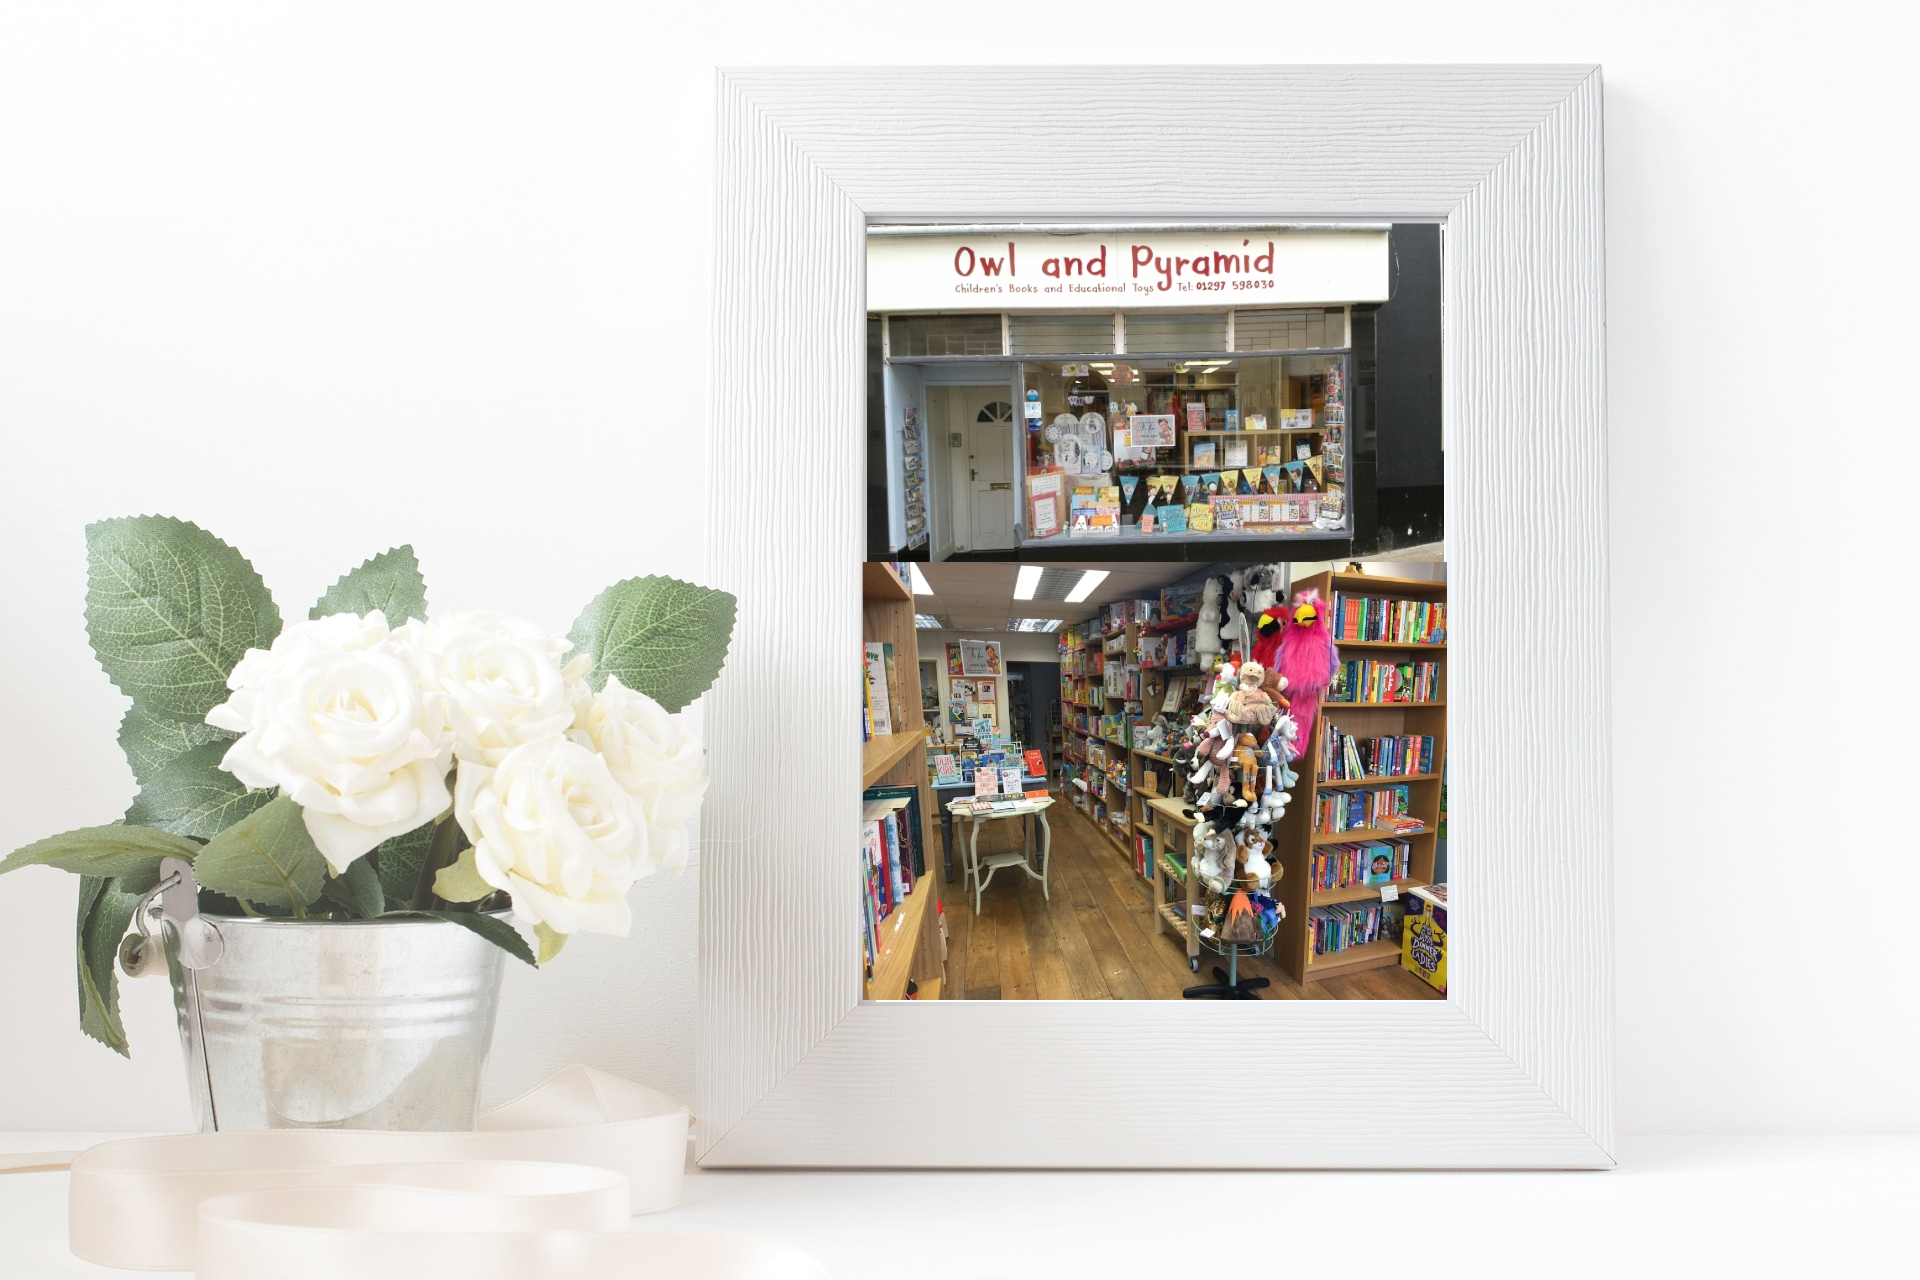 Book Shop Feature: Owl and Pyramid